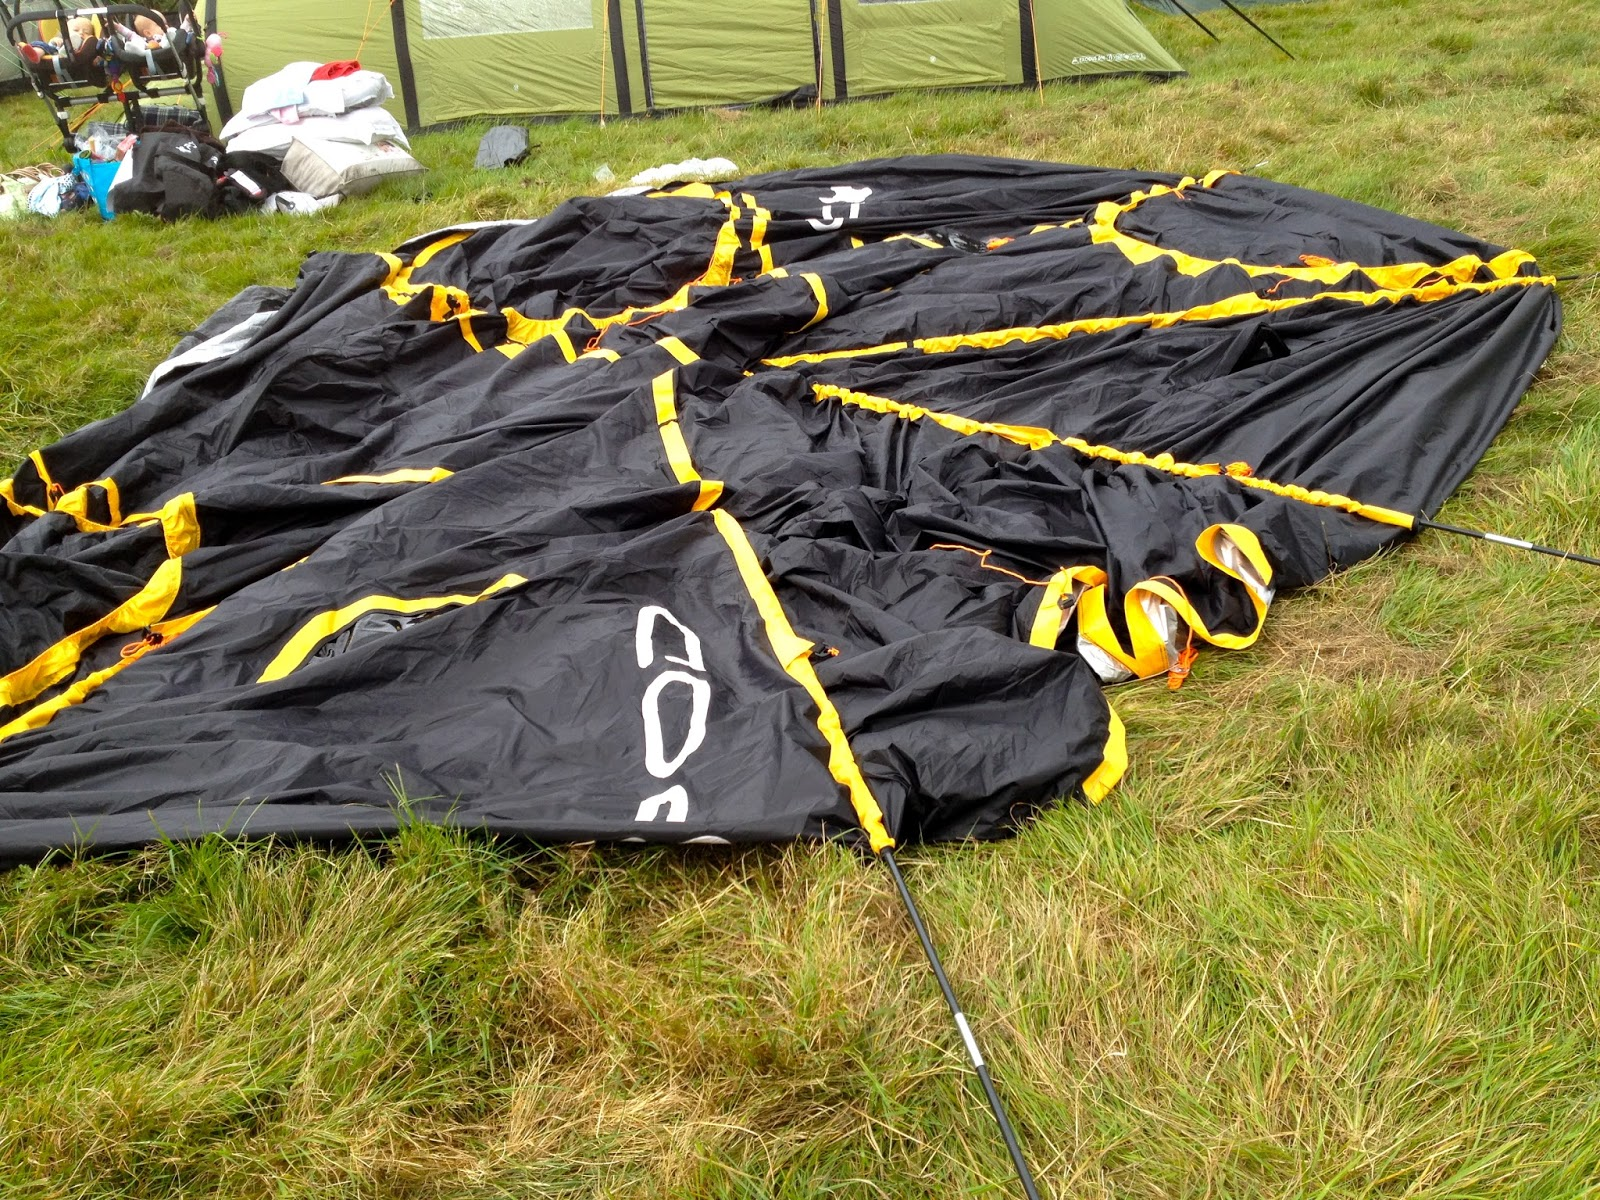 Assembling the POD Tent Maxi & Mummyu0027s Space: Happy Camping with the POD Tent Maxi